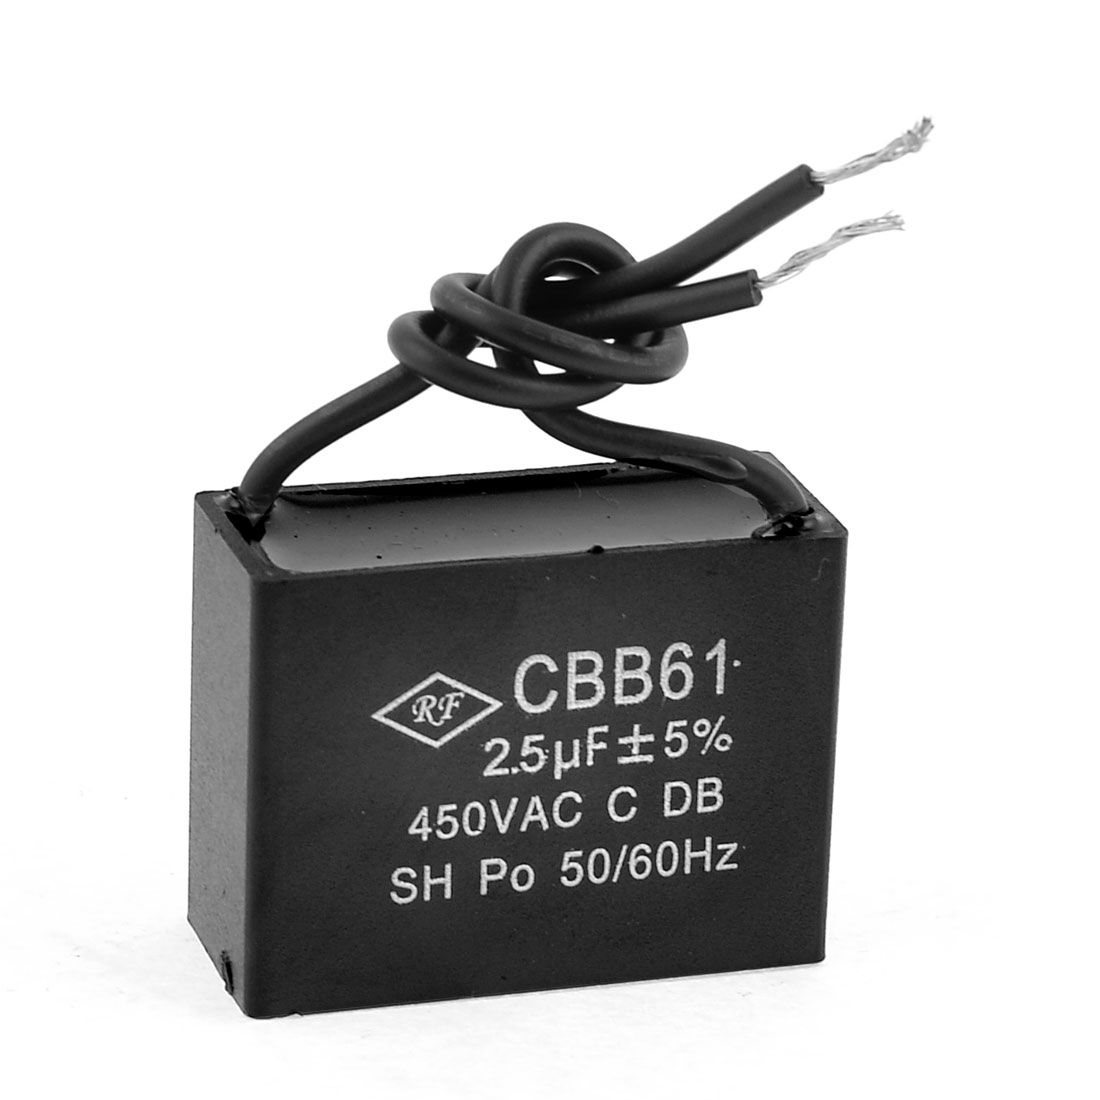 Ceiling Fan Capacitor CBB61 2.5uf MFD 450VAC 2 Wire 50/60Hz Black